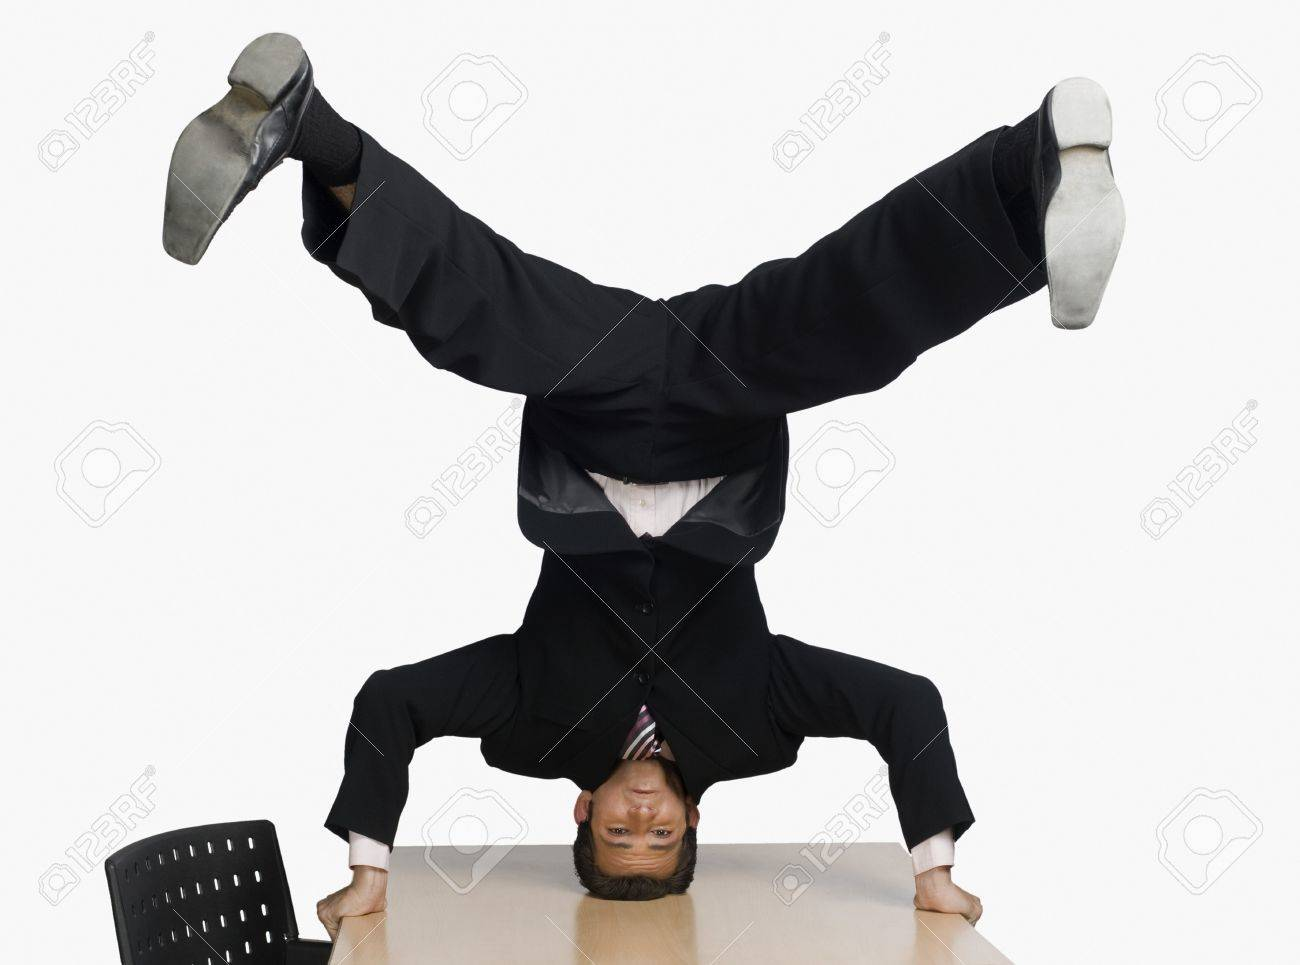 Businessman doing headstand on a conference table Stock Photo - 10123945